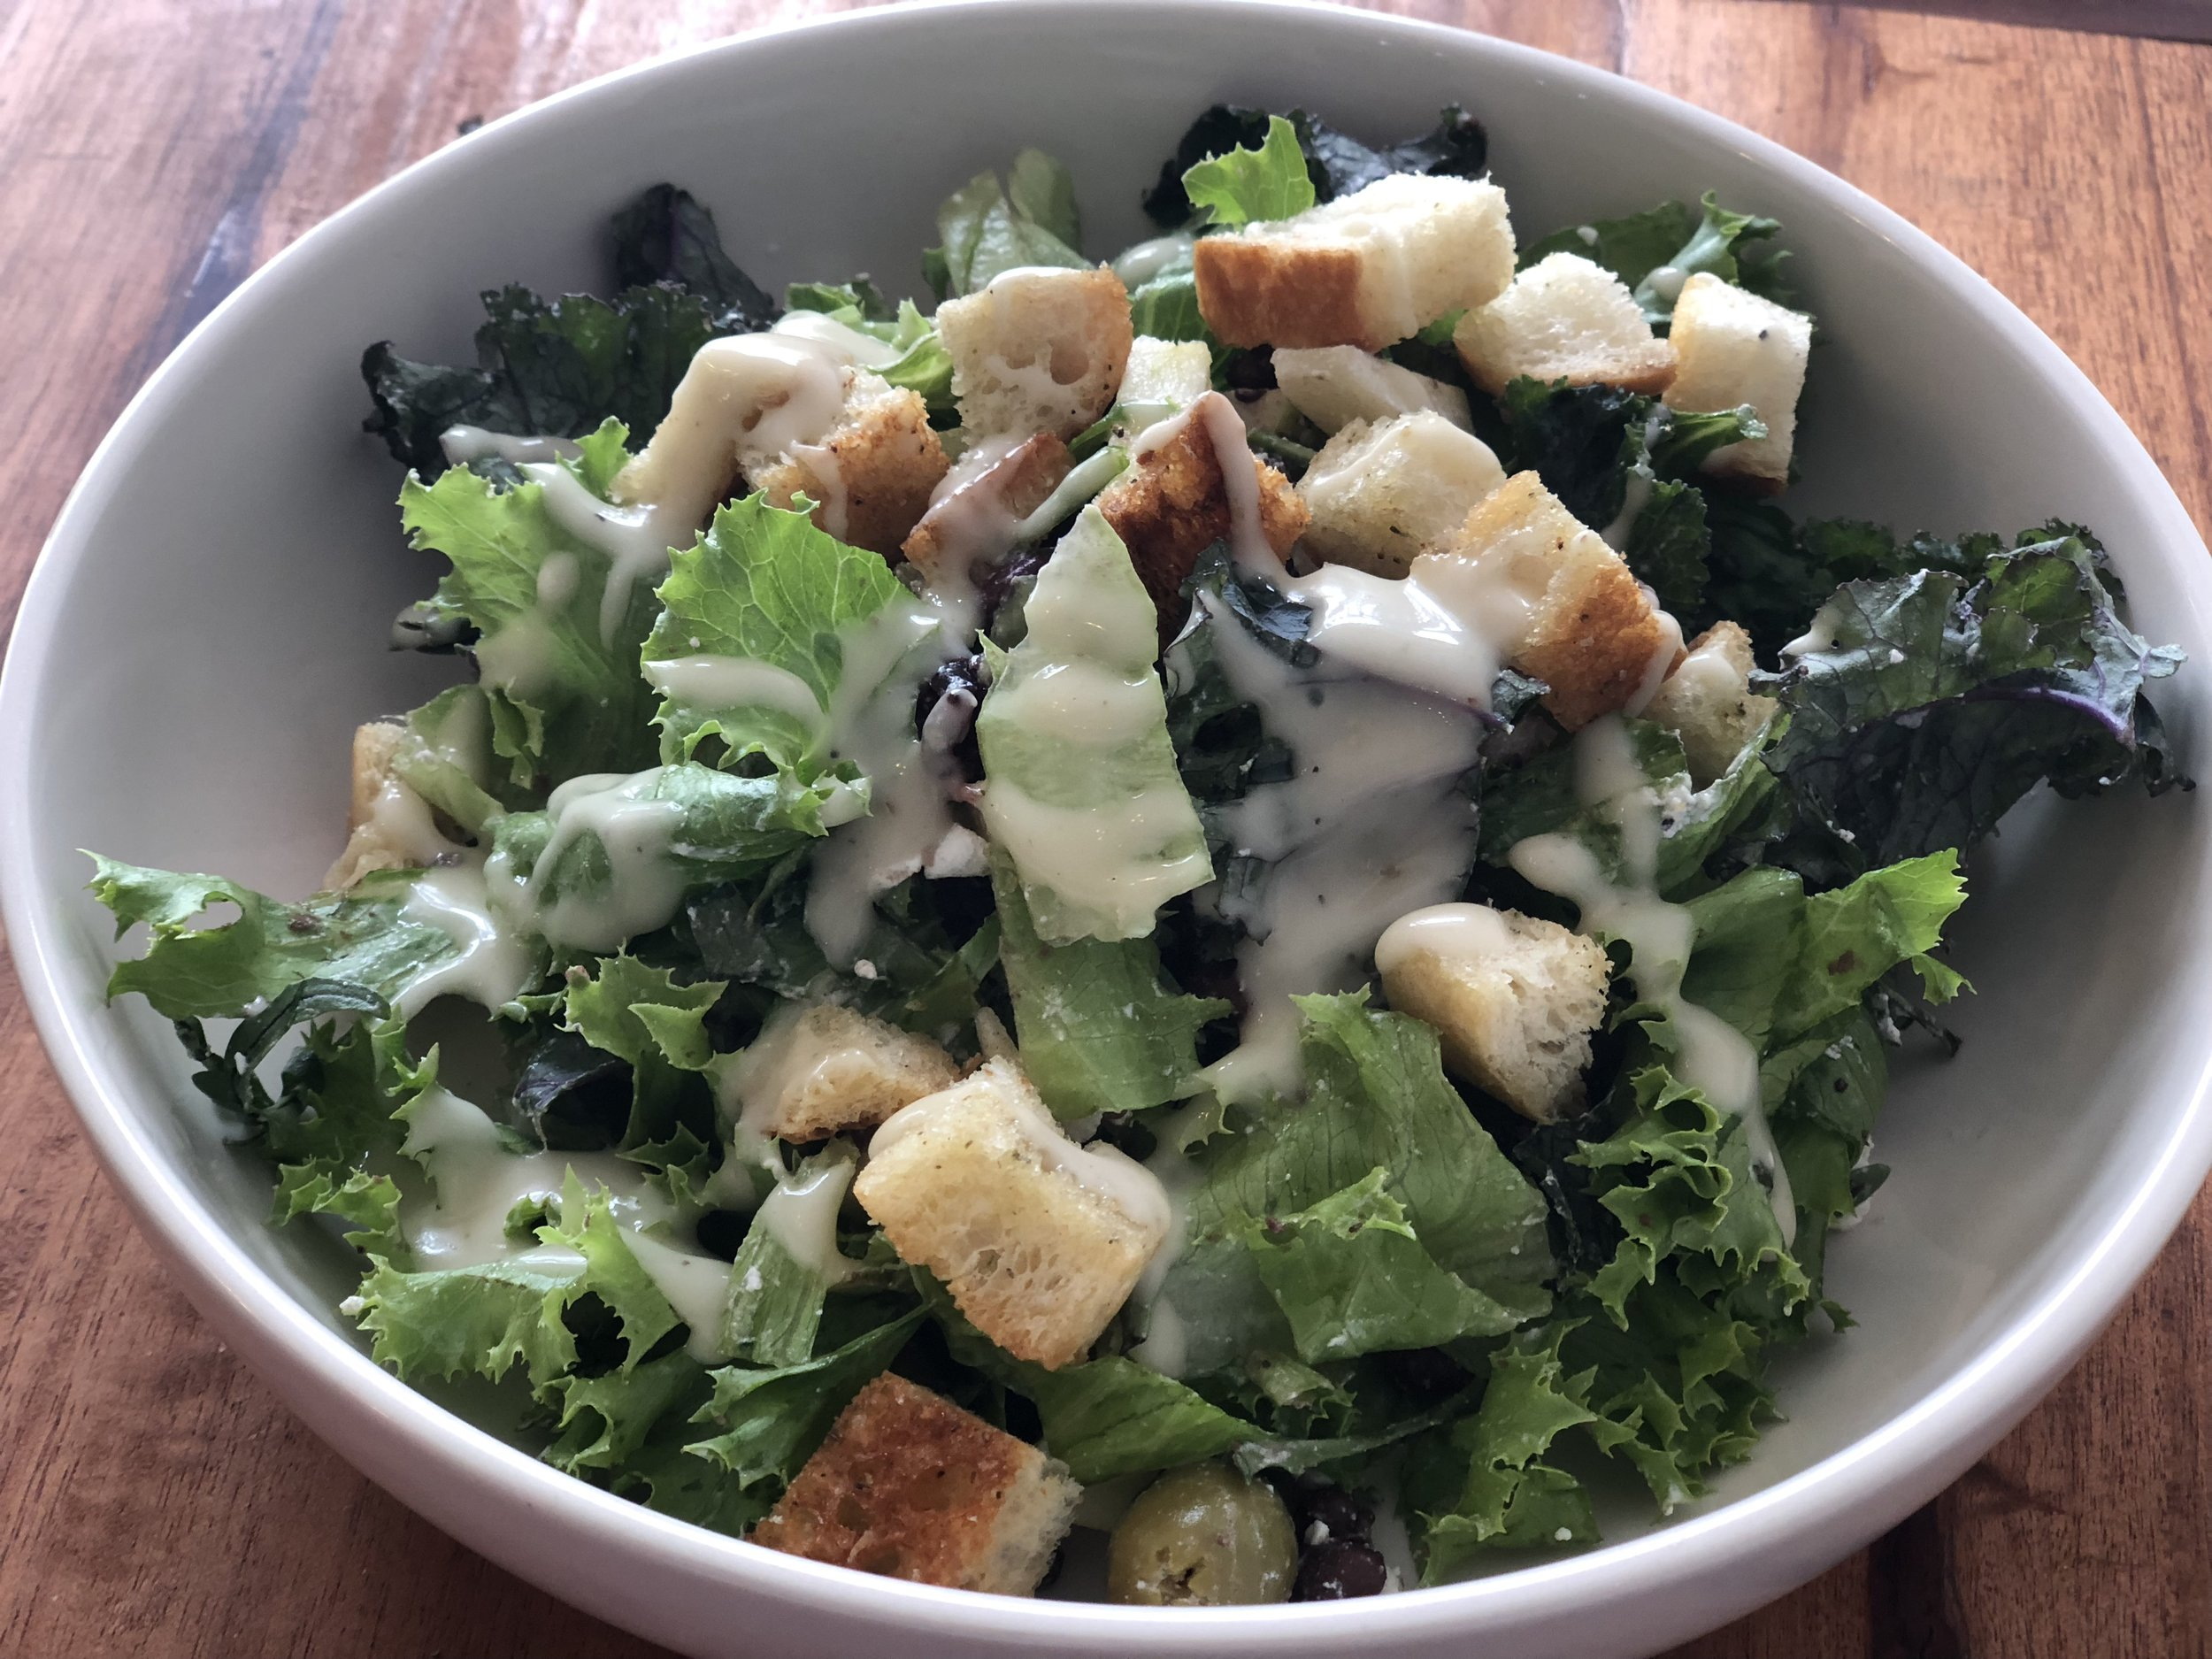 Mixed greens, Red beans, Olives, Apple, Raisins, Olives, Feta cheese, Croutons and a Caesar salad dressing